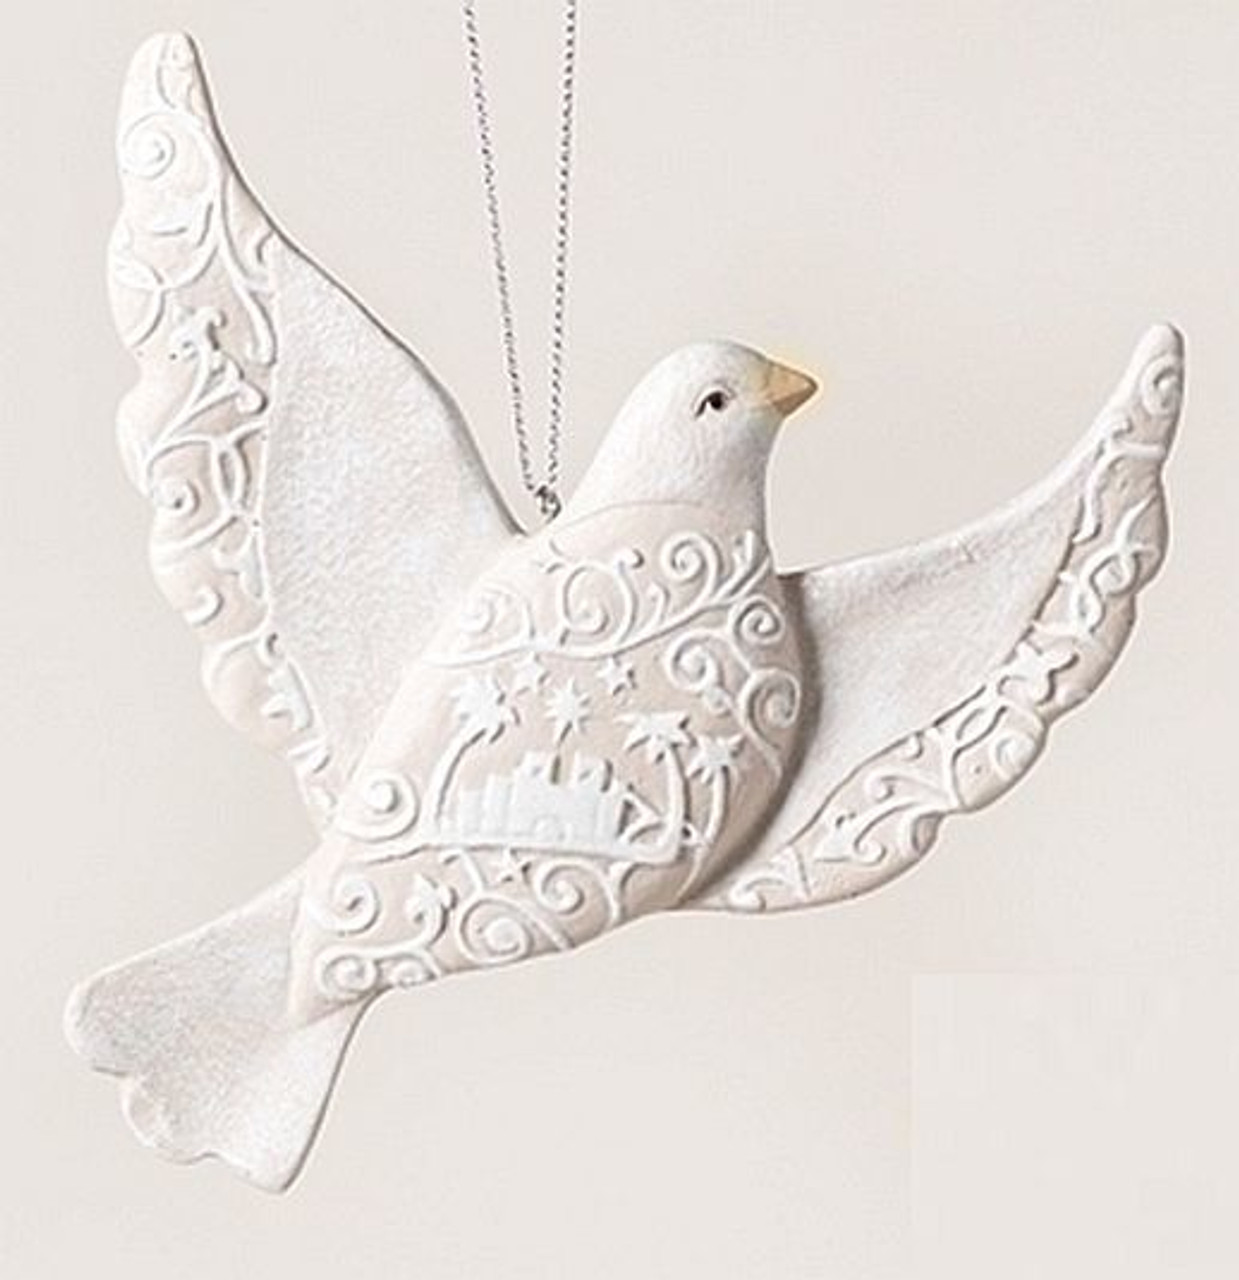 Dove Christmas Ornament in Beige & White with Bethlehem in design Resin  measure 5 inches RO33904A - Dove Christmas Ornament Beige & White Bethlehem Resin 5